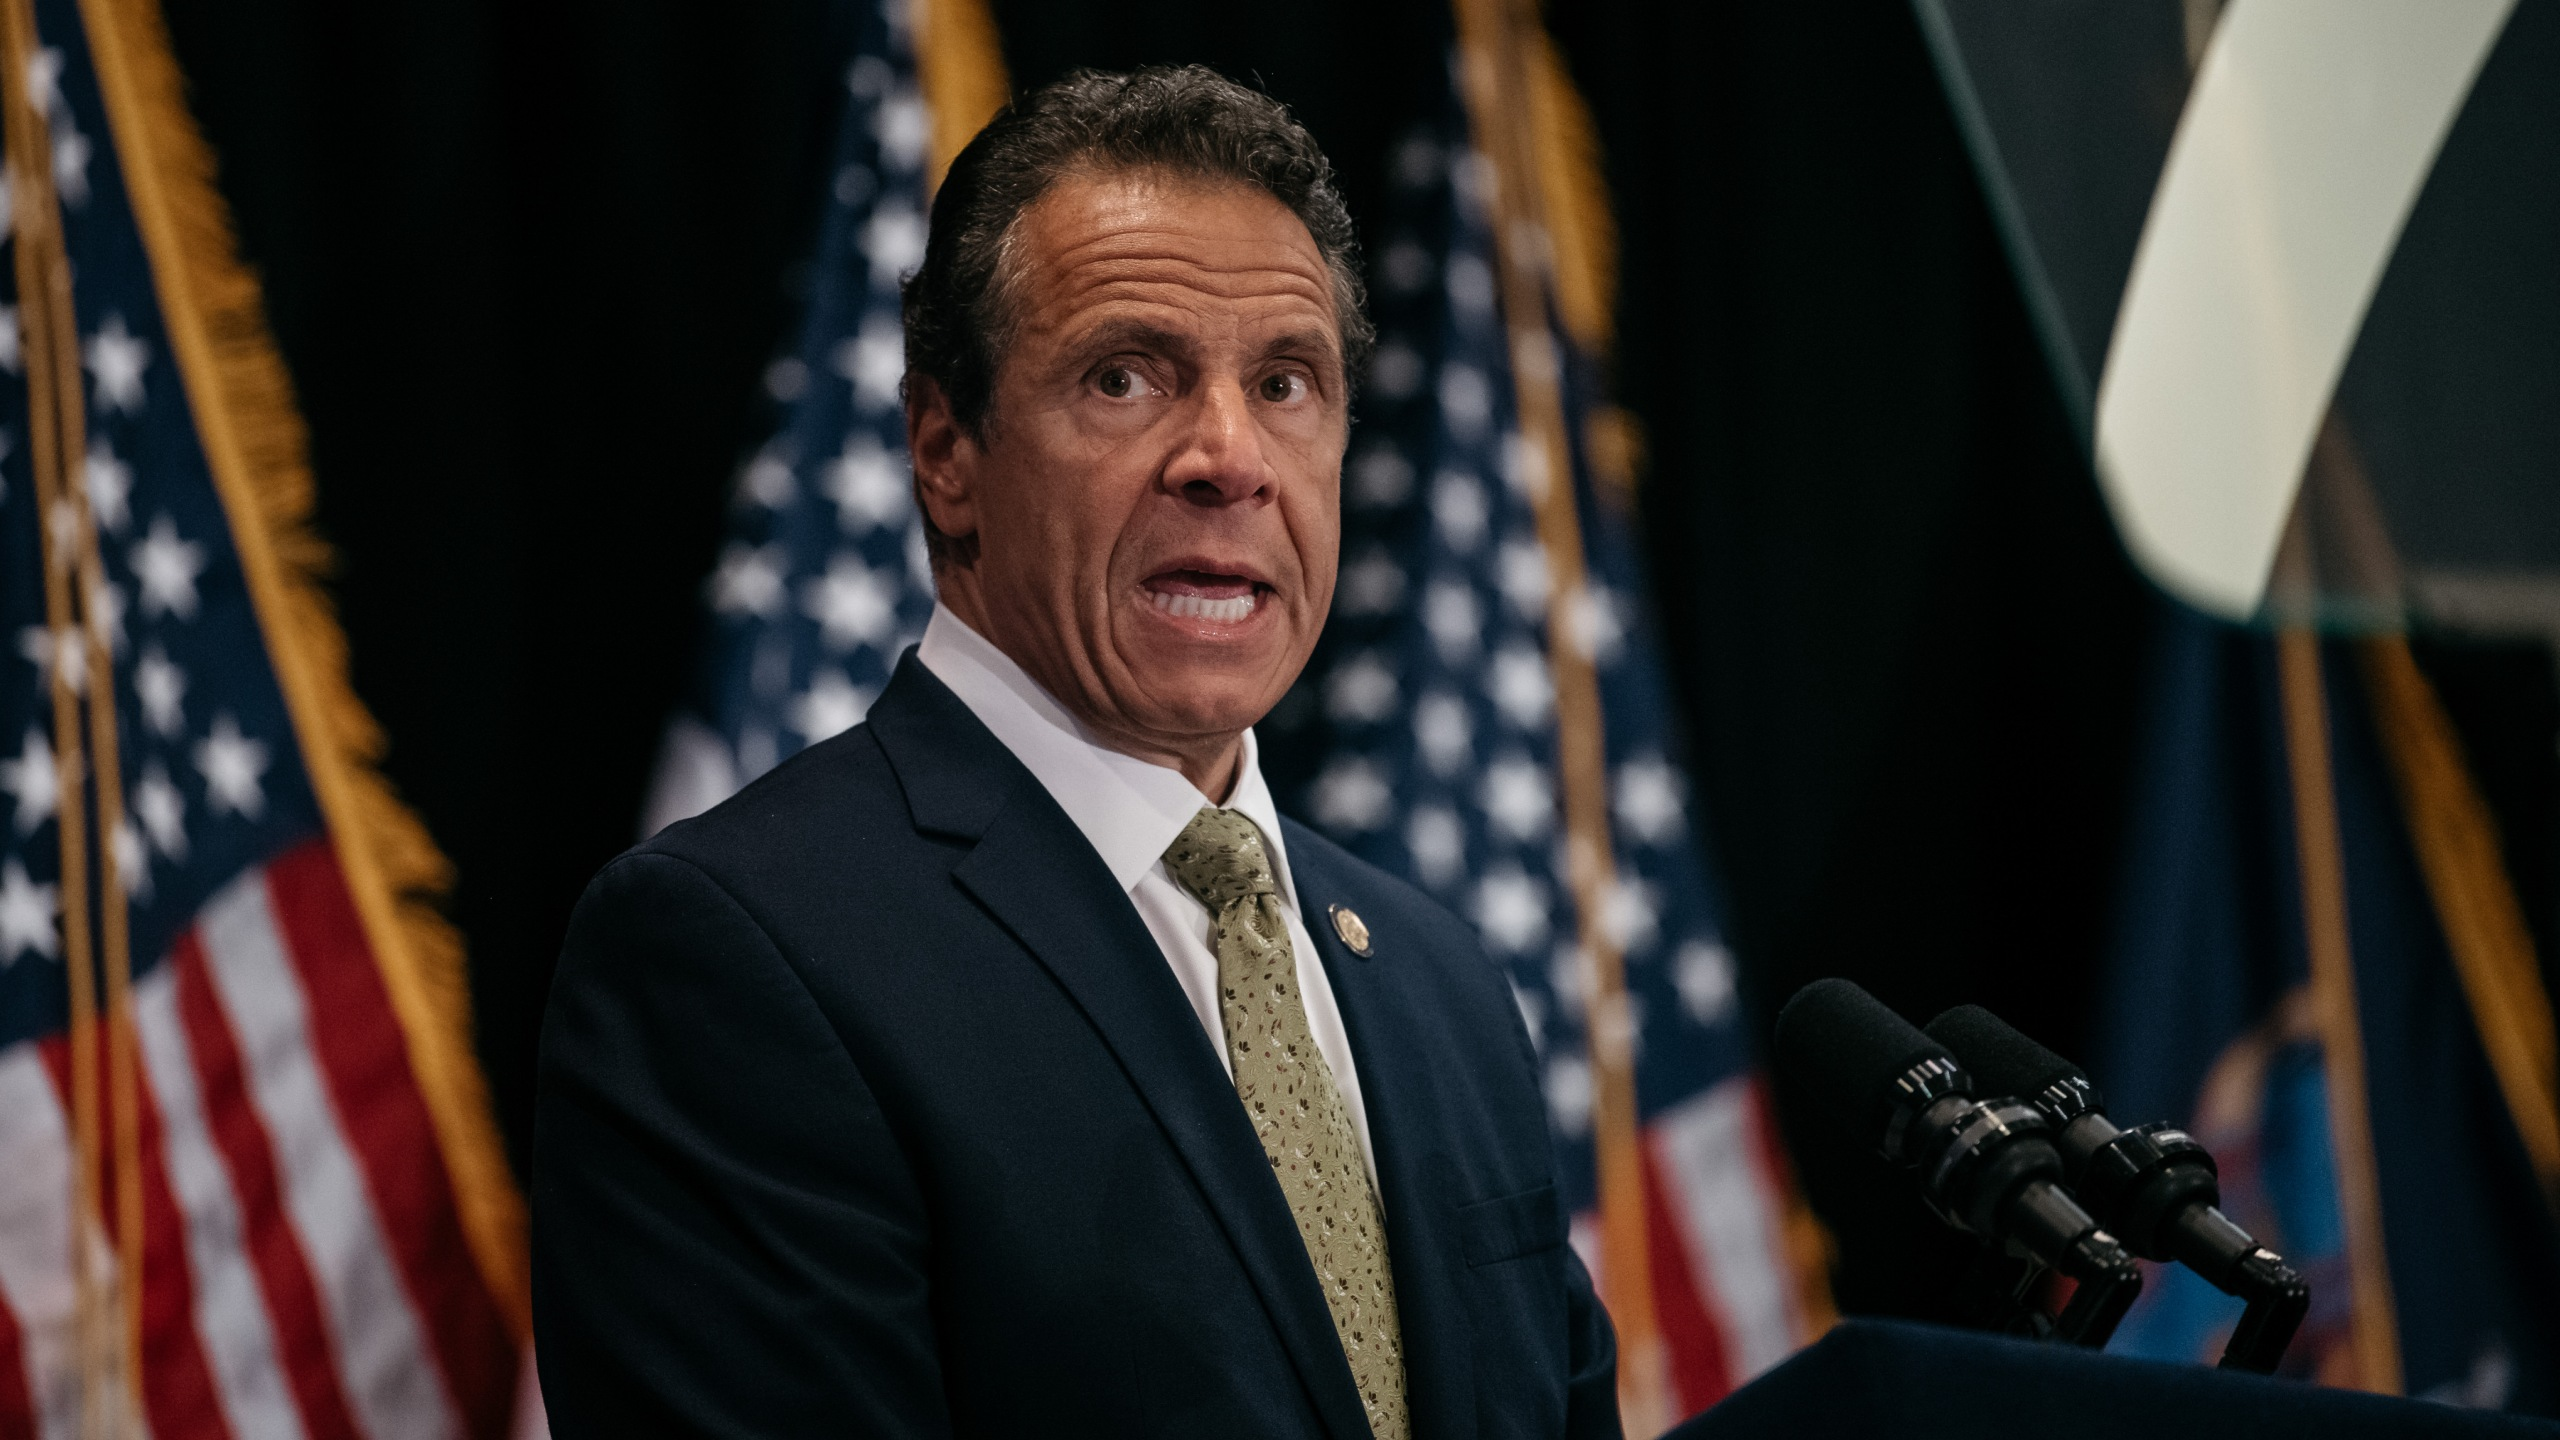 New York Gov. Andrew Cuomo delivers a speech at Fordham Law School in Manhattan on July 18, 2019 in New York City. (Credit: Scott Heins/Getty Images)